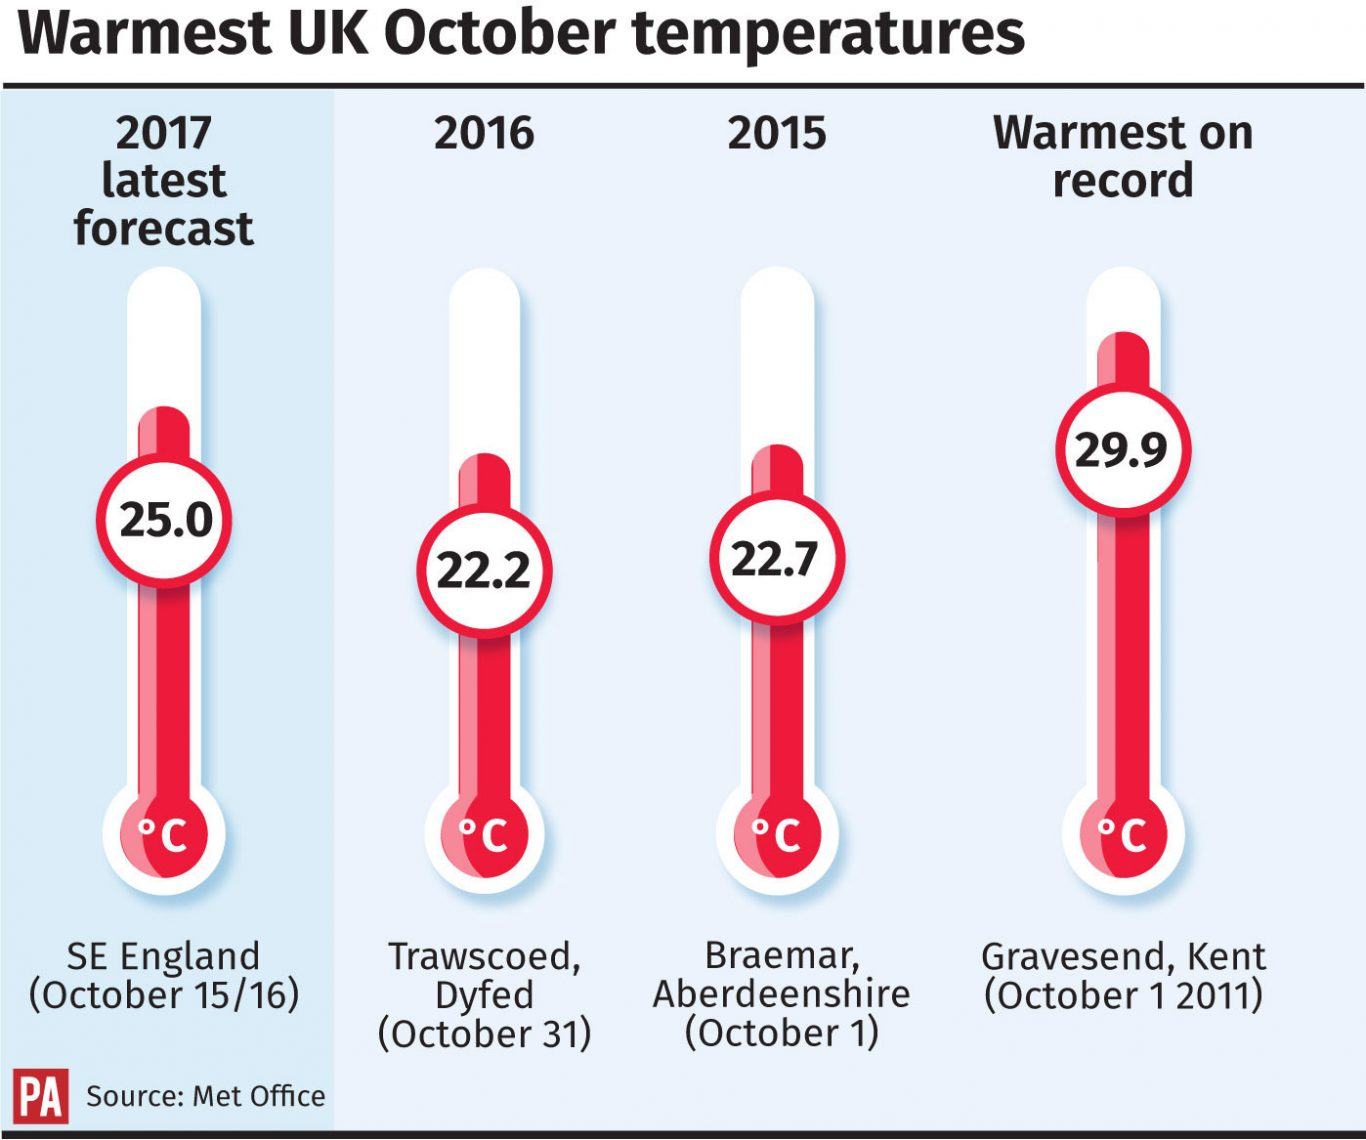 Warmest UK October temperatures